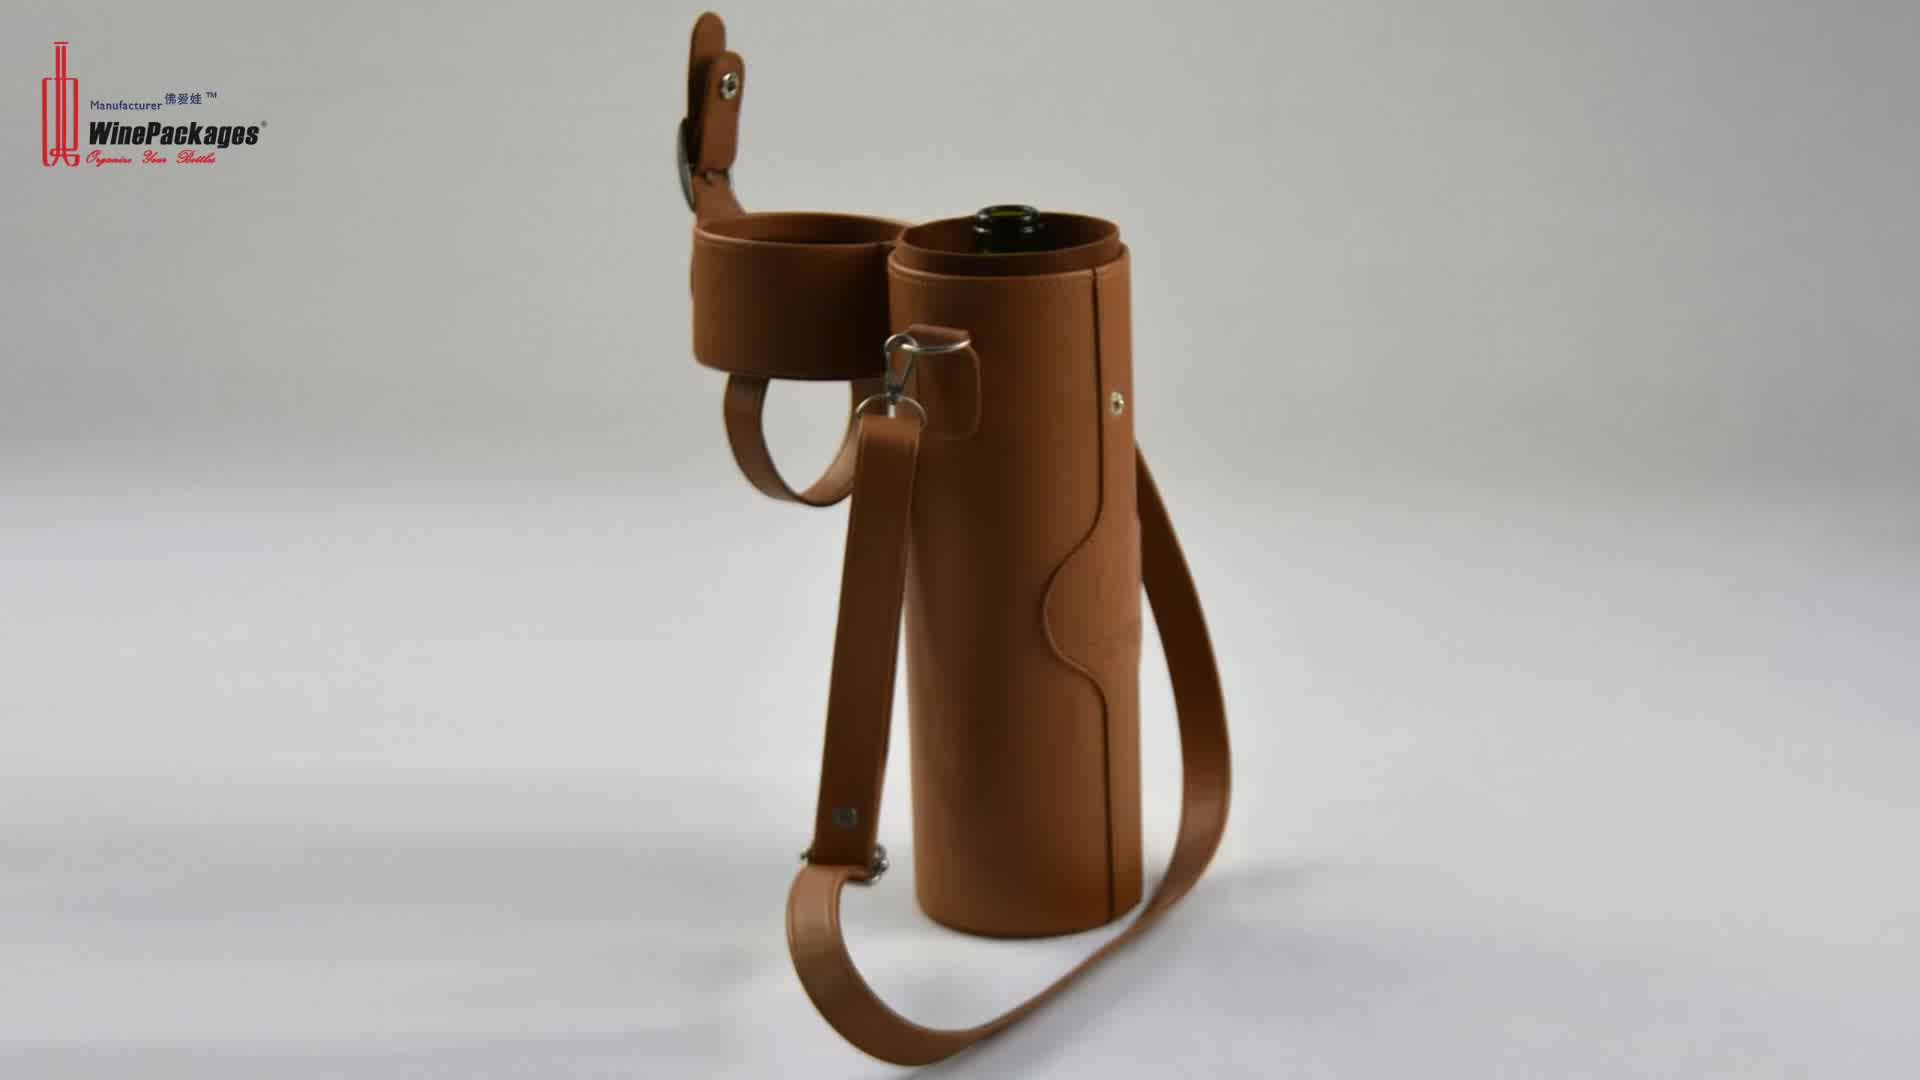 Cylinder shaped custom leather single bottle wine holder